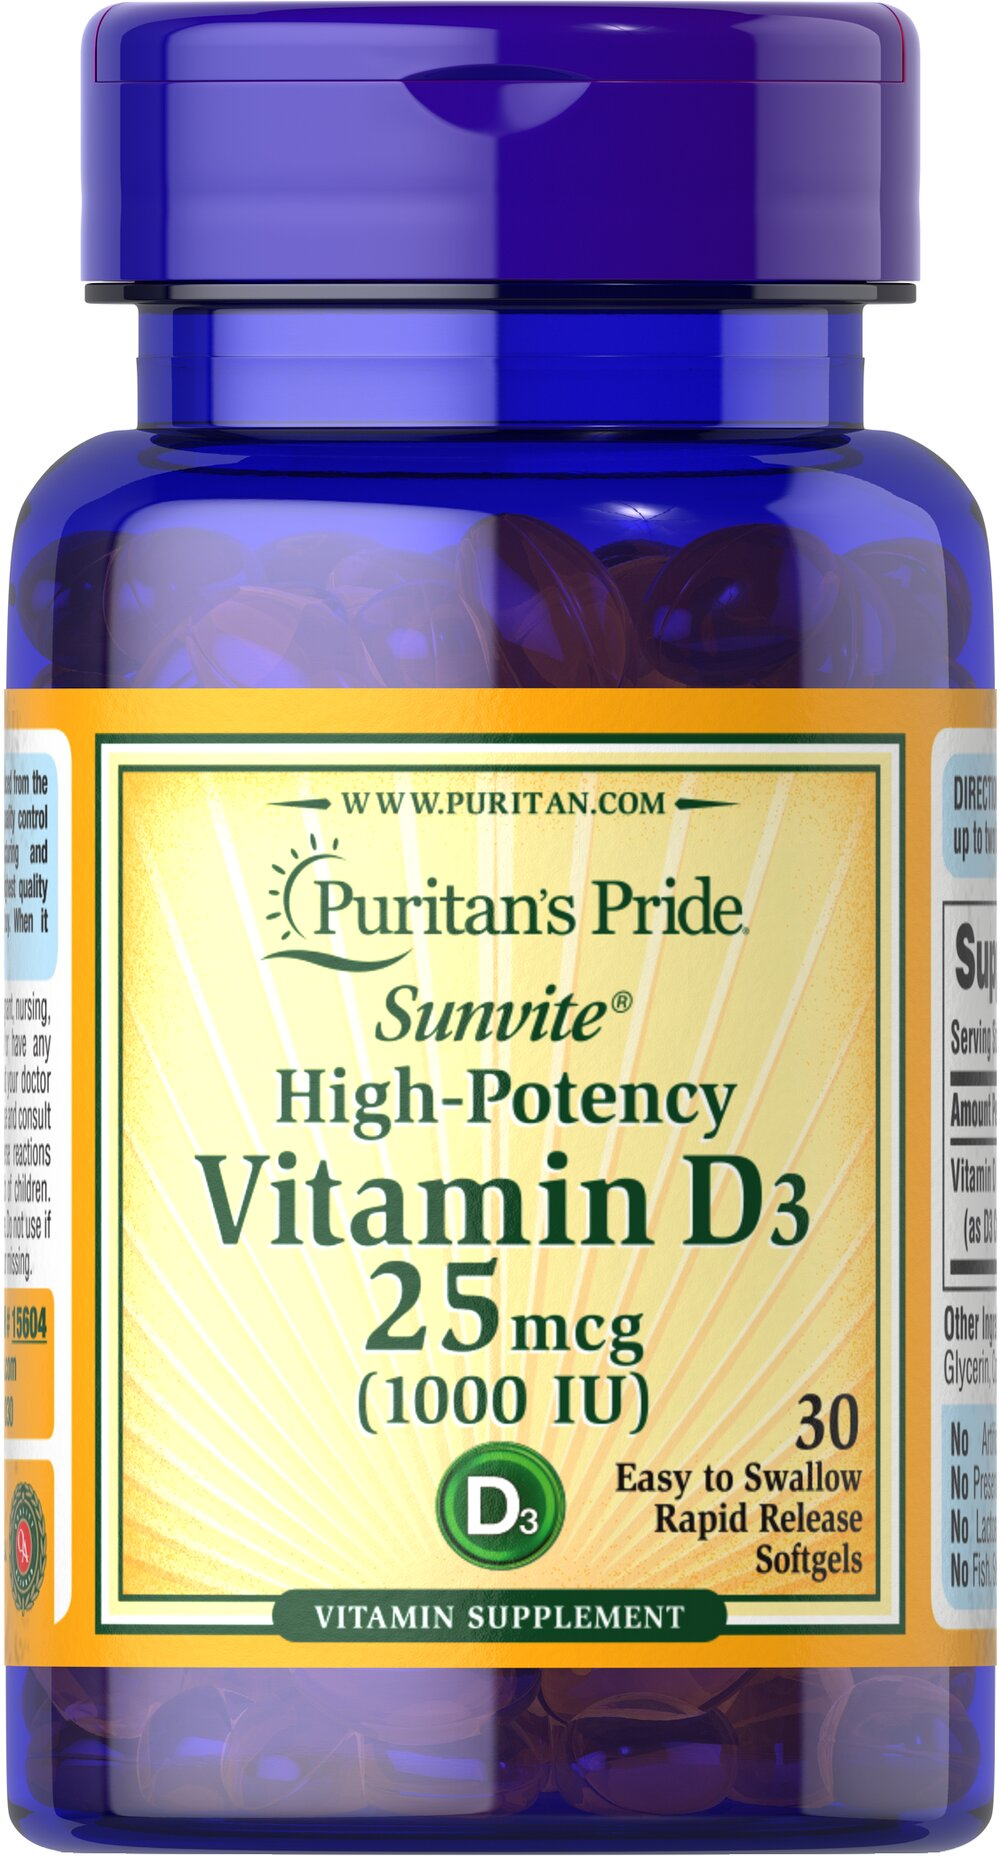 "Vitamin D3 1000 IU <p>Sample the supplement that has been all over the news the past two years – Vitamin D!</p><p><span></span>Vitamin D is known for helping build <a href=""/bone-health-241?searchterm=bone%20health&rdcnt=1"">bone health</a> , plus it supports a healthy immune system.*</p> 30 Rapid Release Softgels 1000 IU $1.19"